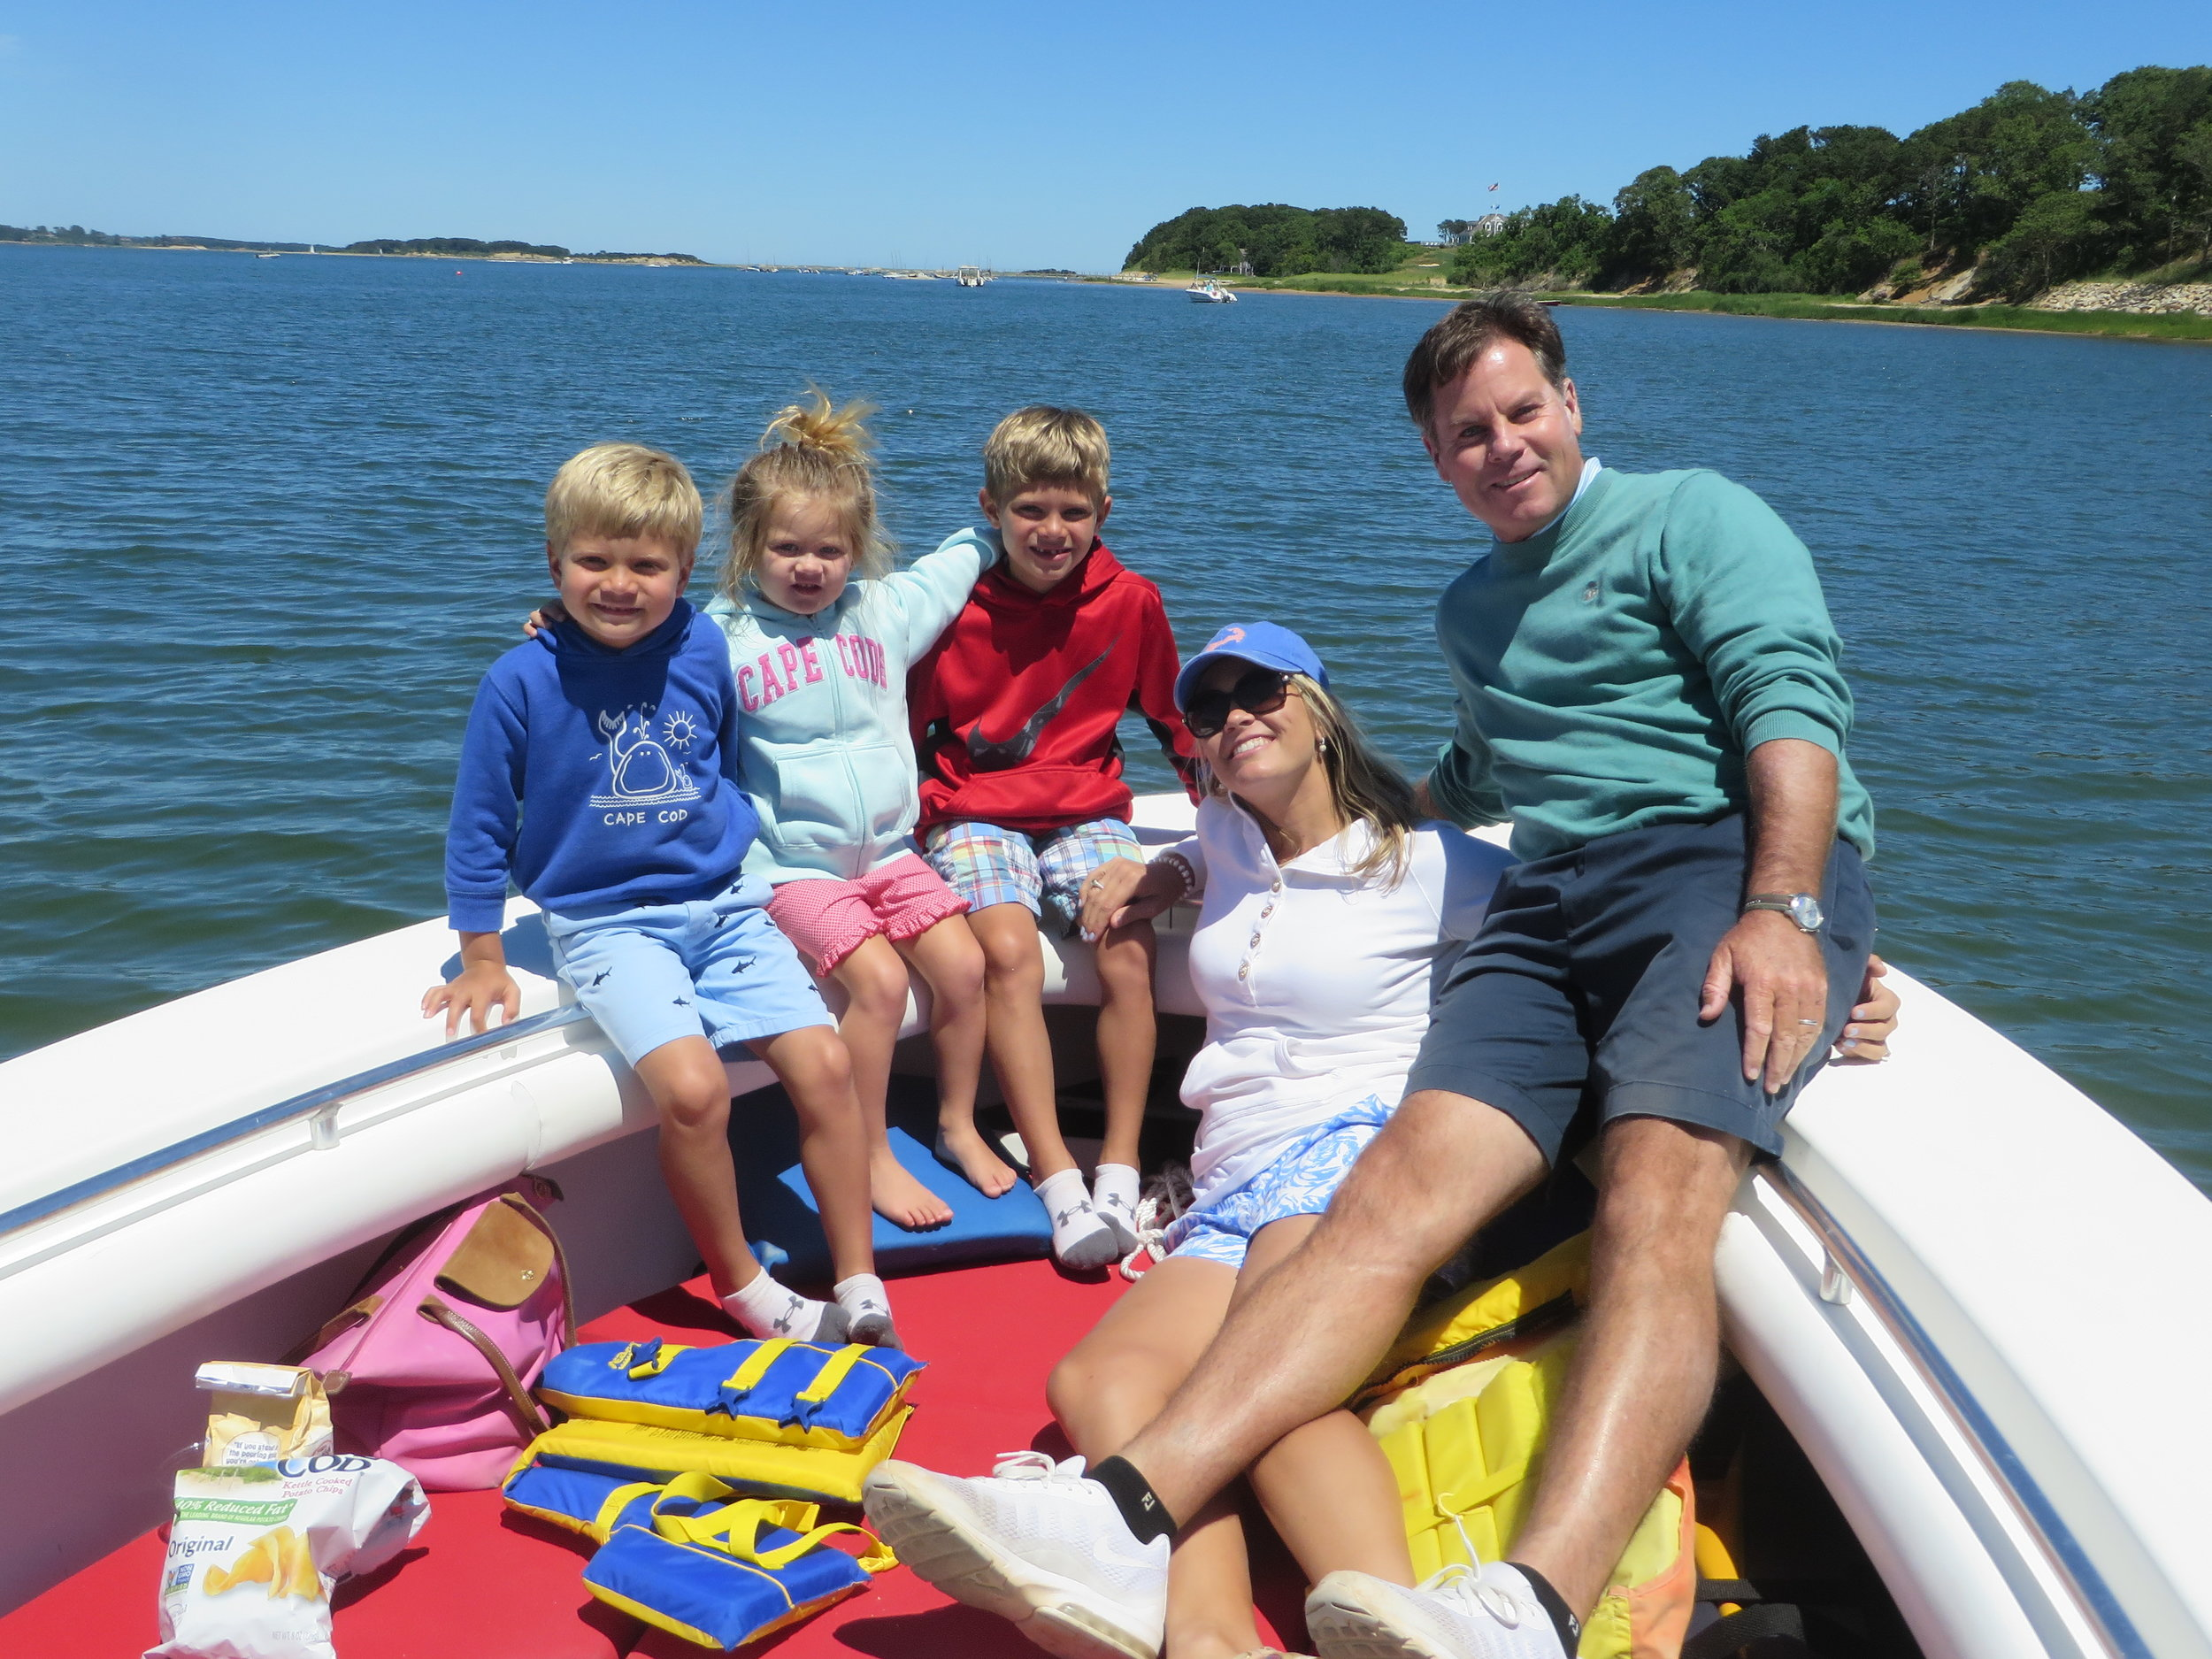 Tom, Lianne and family from Florida enjoy their tour snack and drink stop. Another great Cape Cod day.